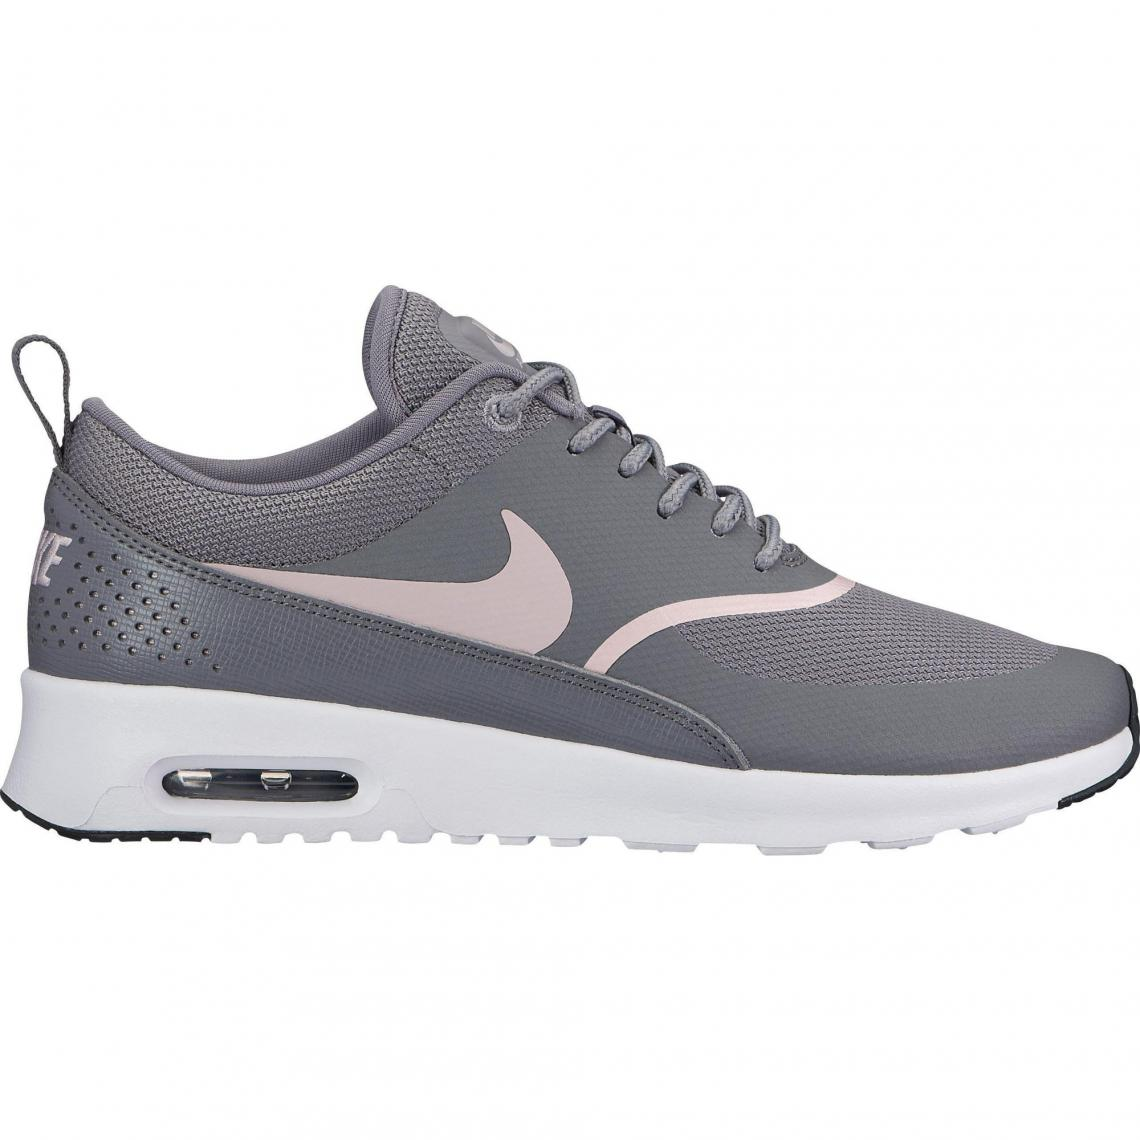 finest selection 4f9f1 2f241 Nike Air Max Thea chaussures de running homme - Gris - Rose Nike Homme